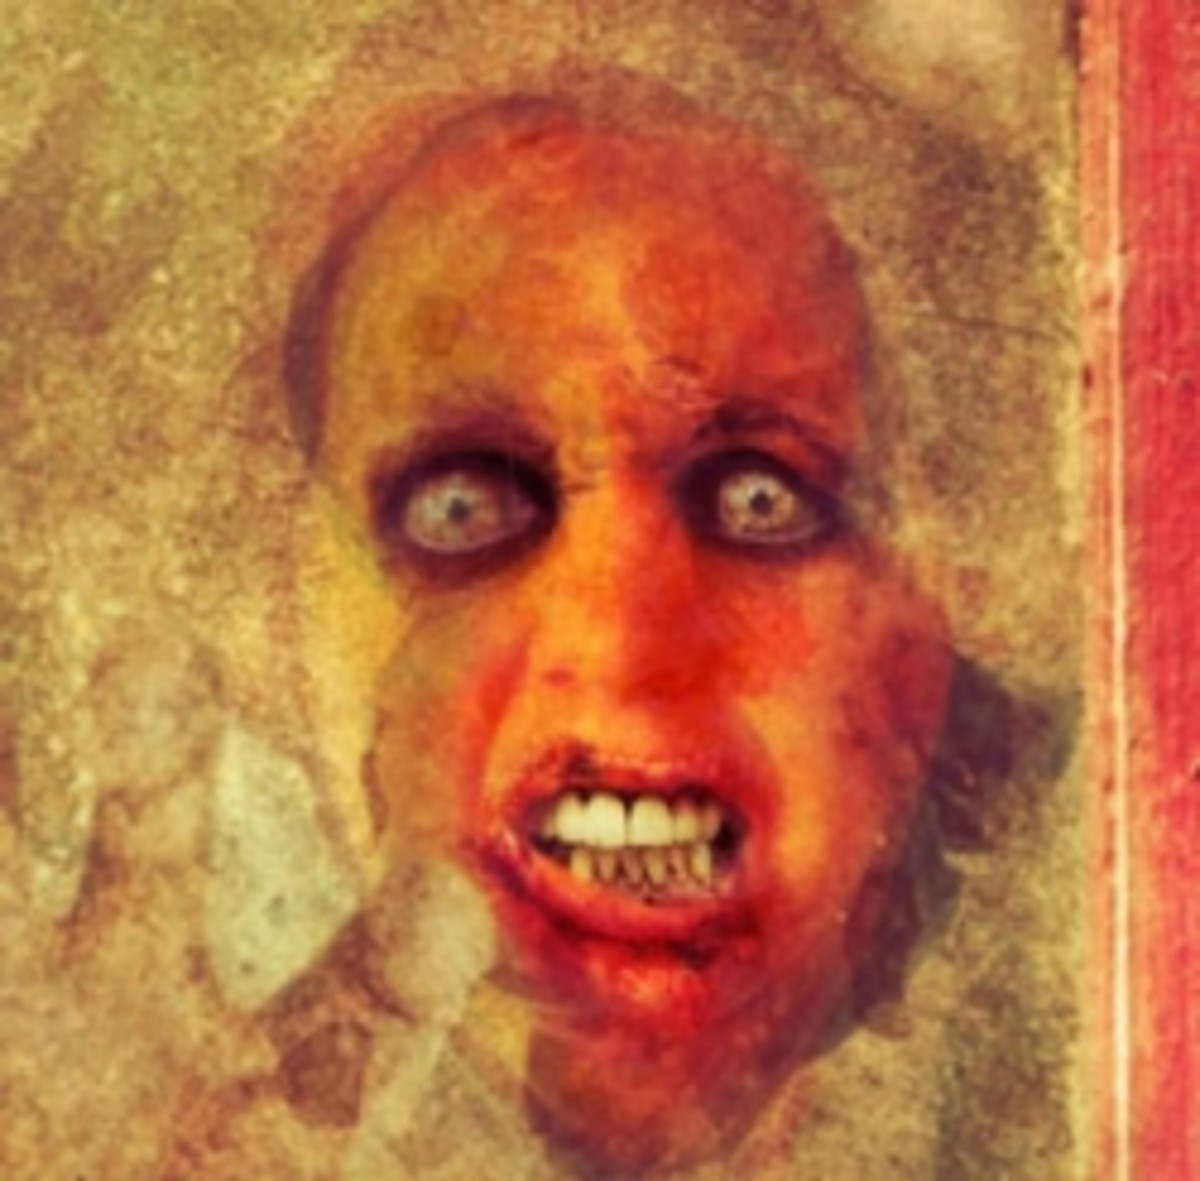 Image of myself created using AMC's Dead Yourself App.